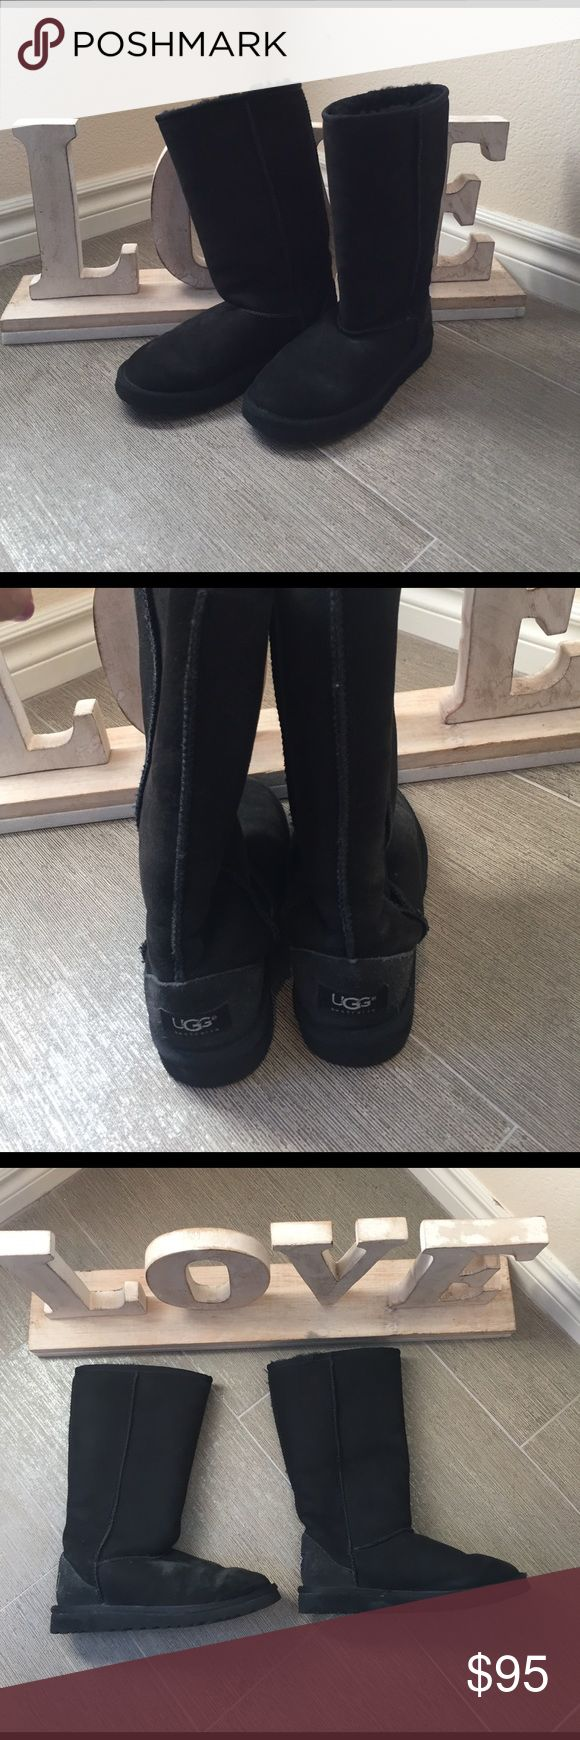 Tall black  kids UGG  boots Tall black UGG boots in good used condition. These were worn but still have a ton of life left in them. Feel free to ask any questions UGG Shoes